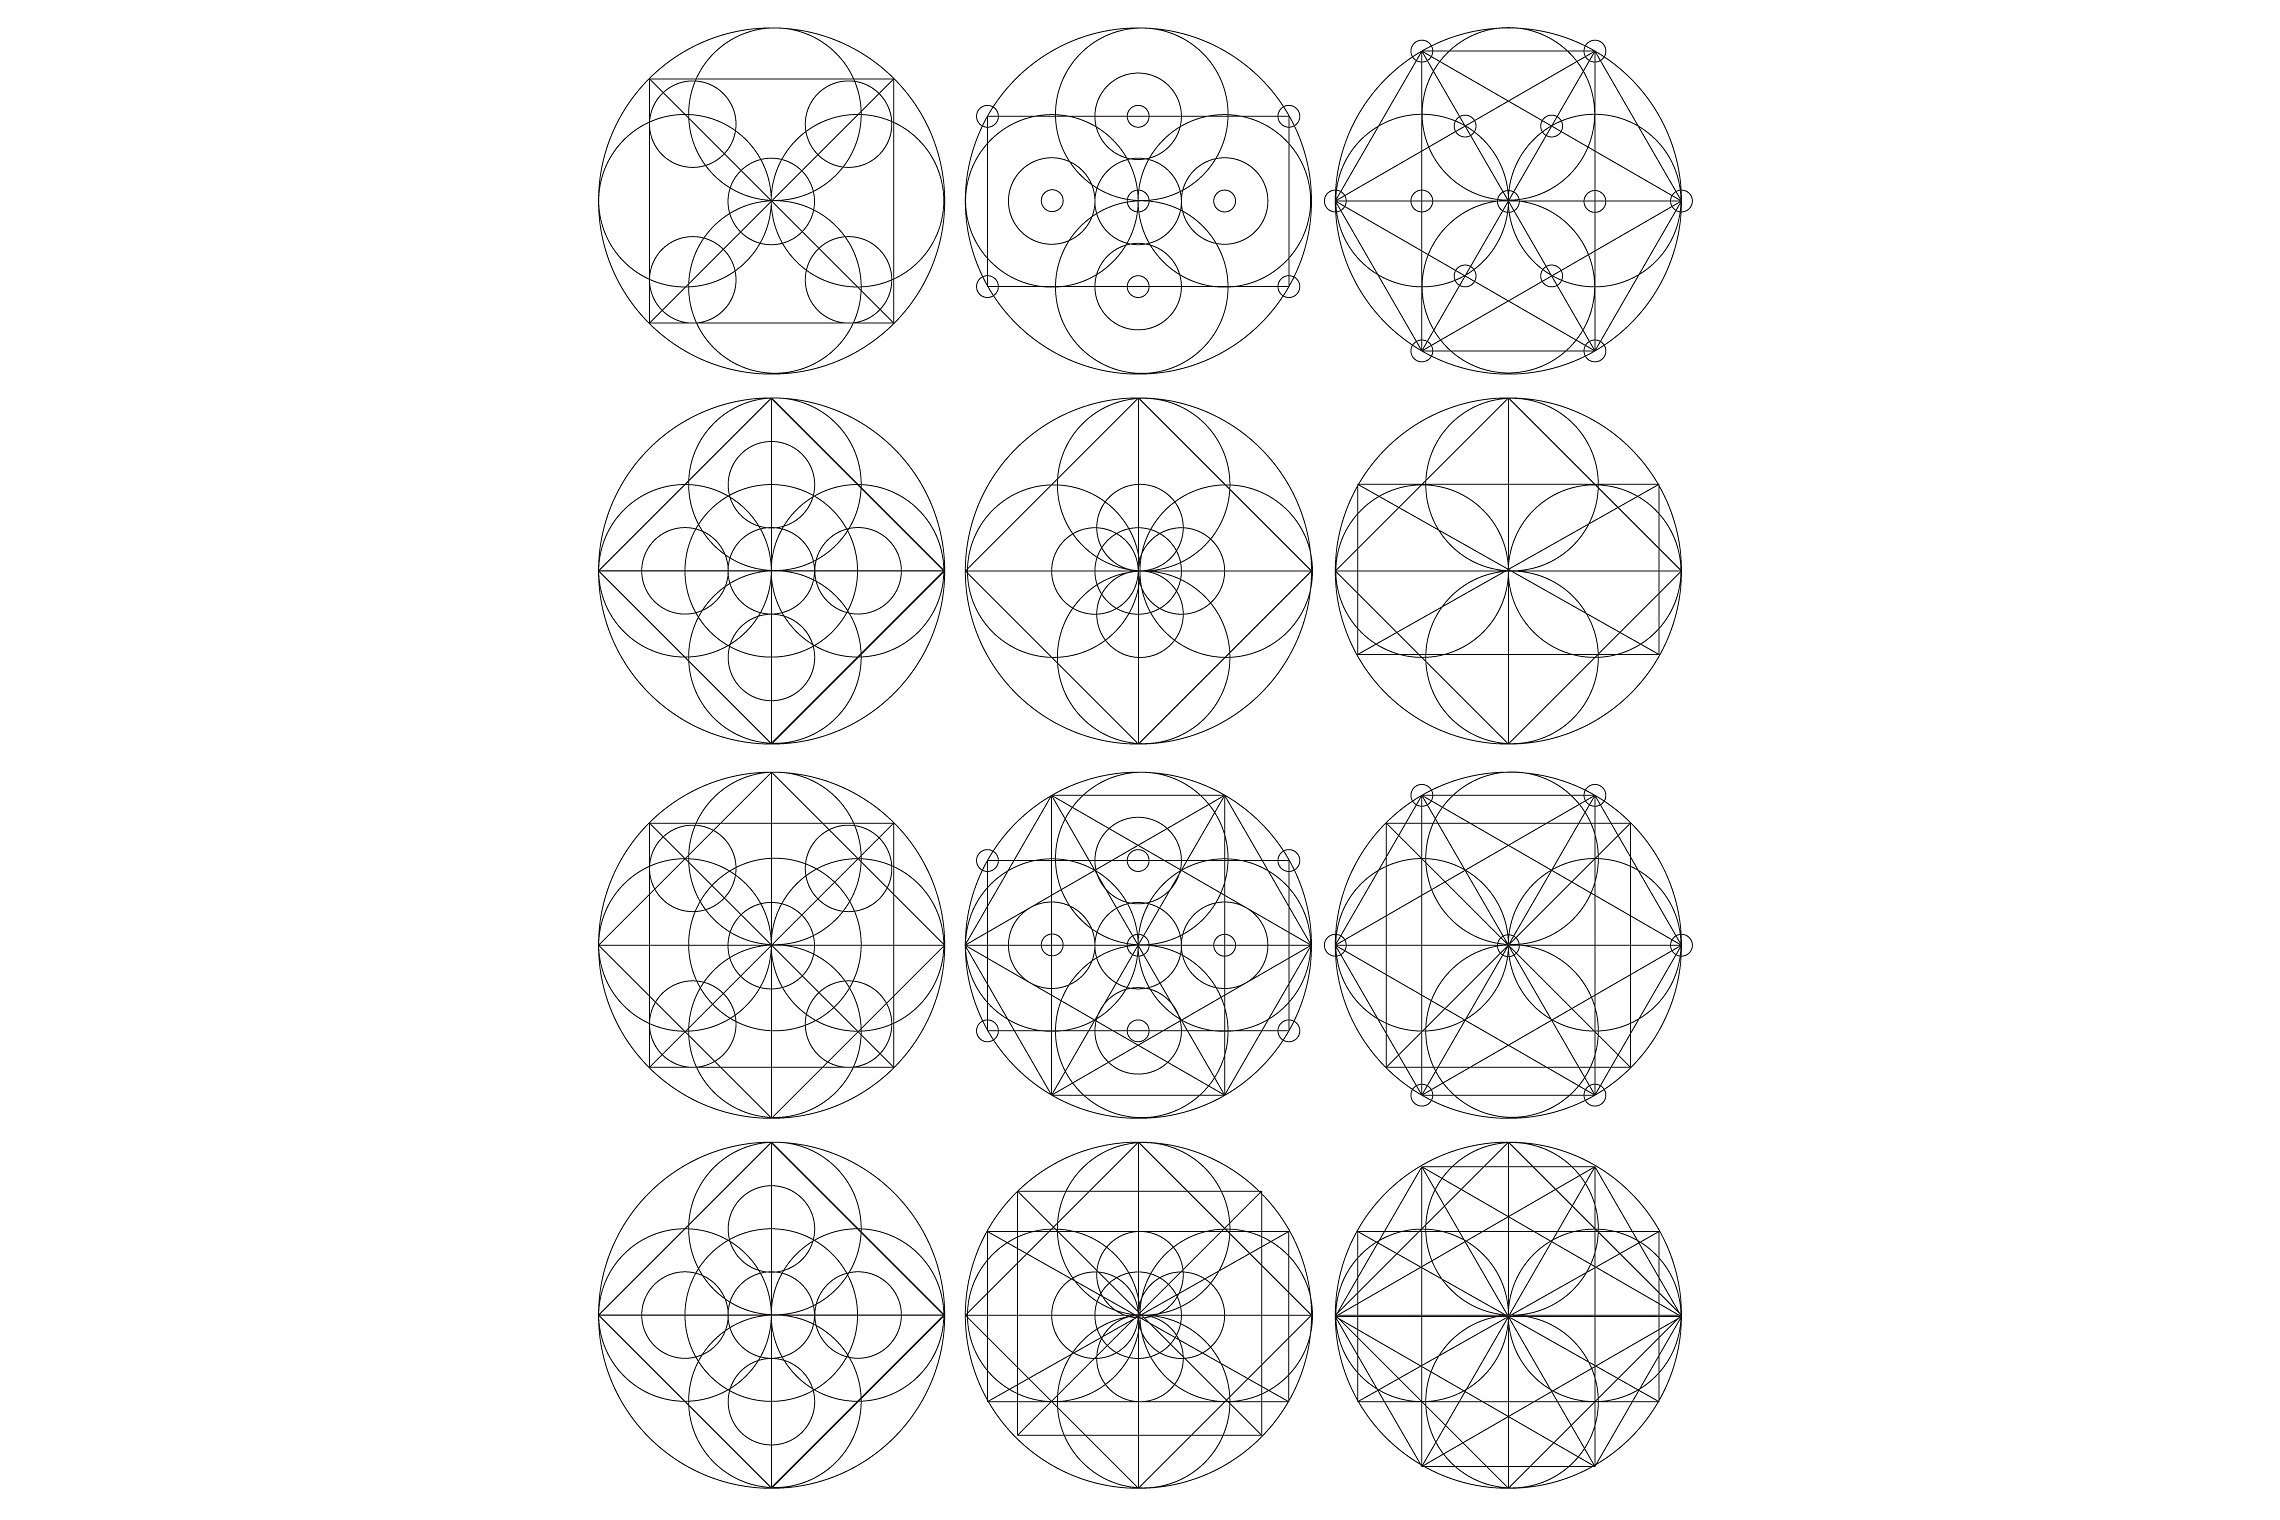 12 Talisman Geometric Vector Shapes example image 2